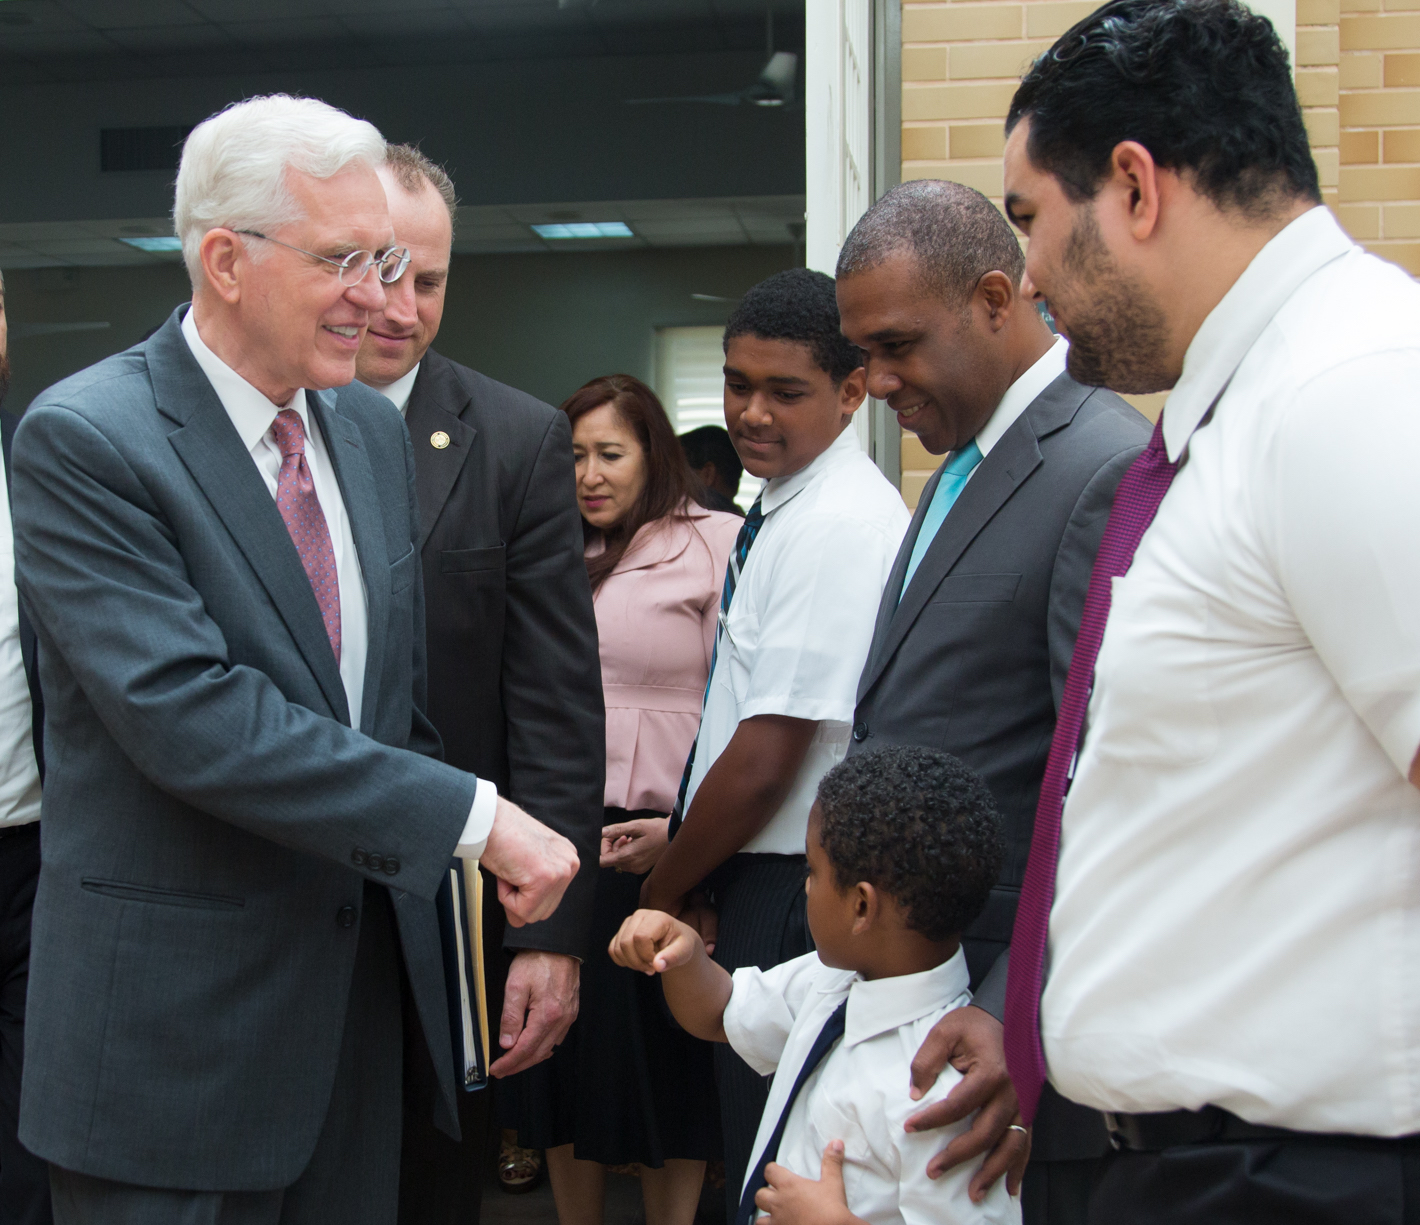 Elder D. Todd Christofferson fist bumps a little boy following a meeting on Nov. 11, 2018, with the Santo Domingo Dominican Republic San Geronimo Stake.